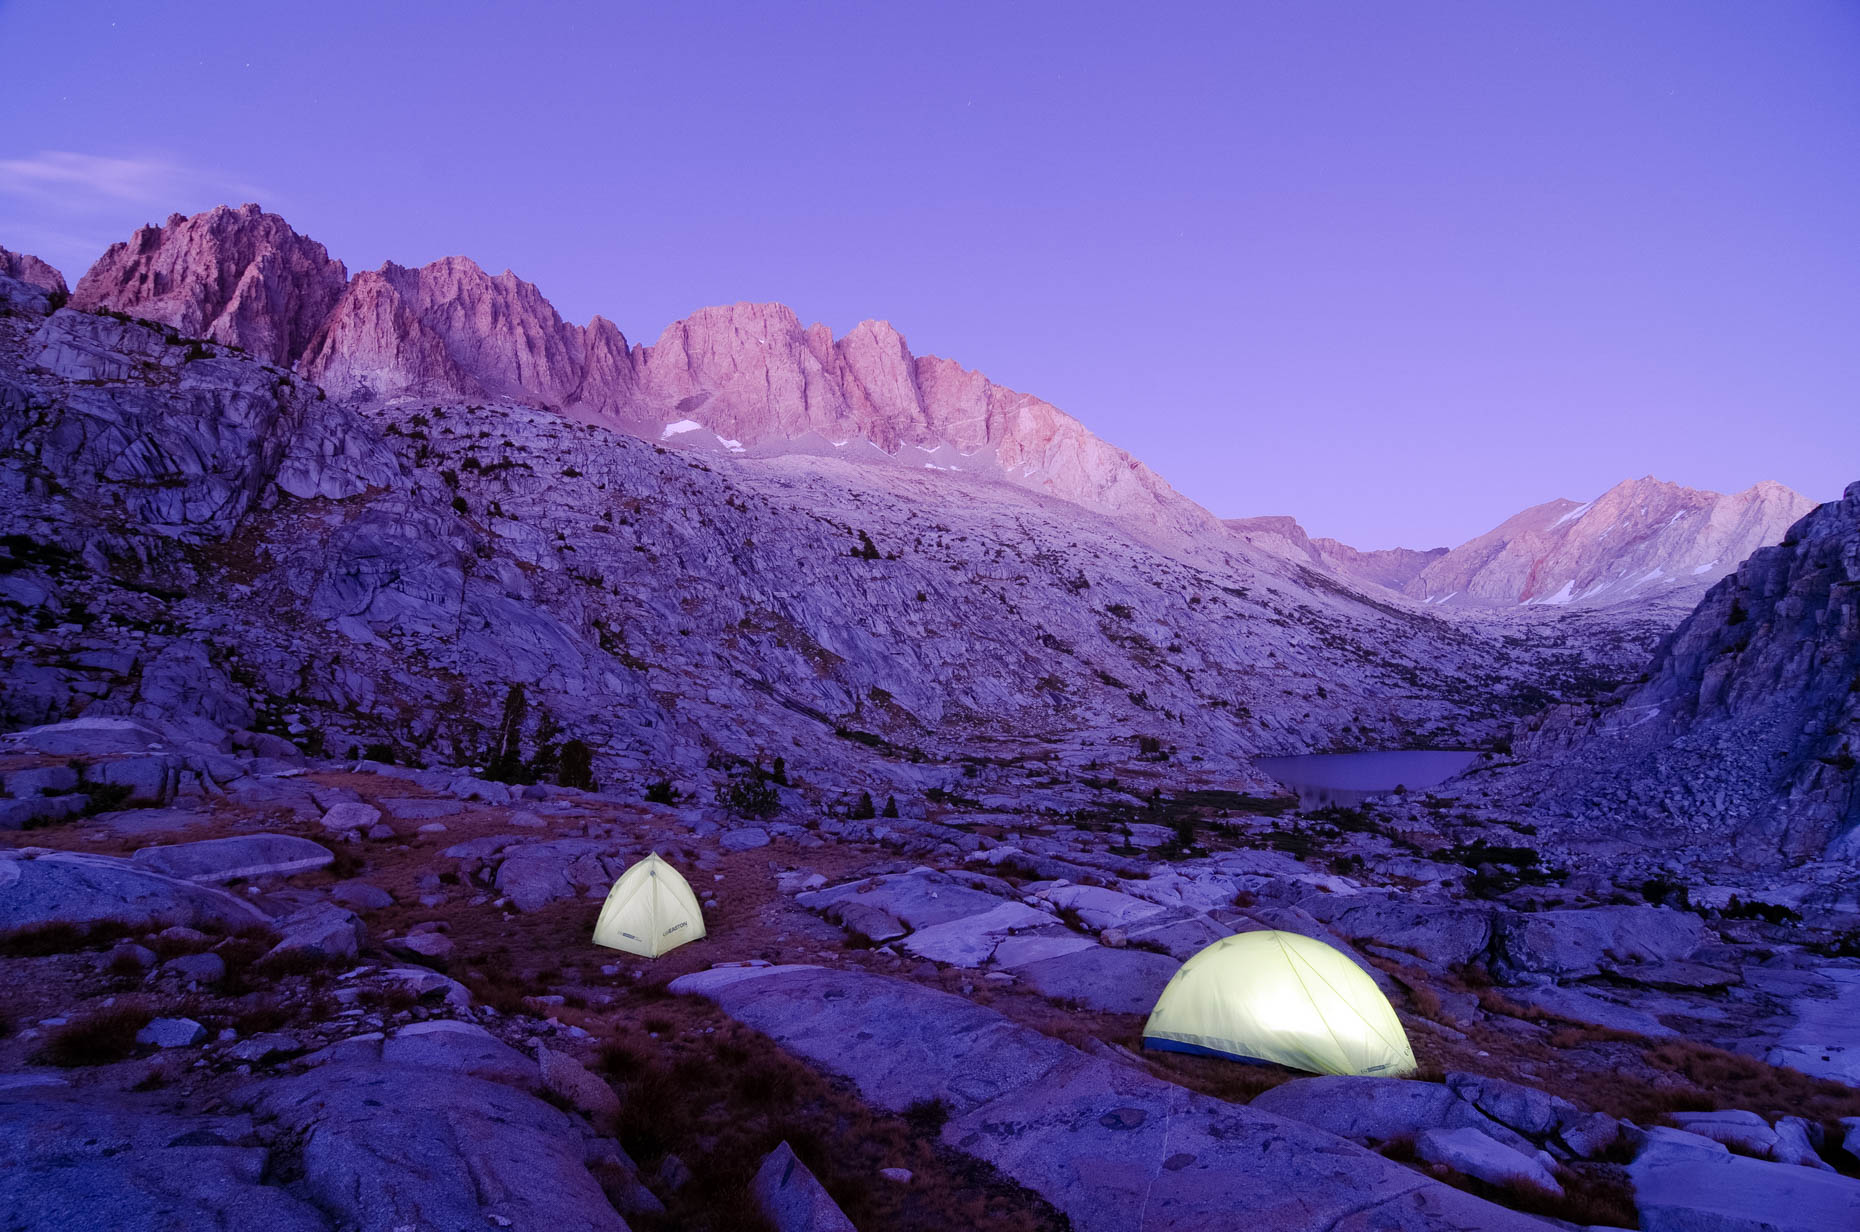 Tents Illuminated On Cirque Pass - The Sierra High Route, Sierra Nevada, California